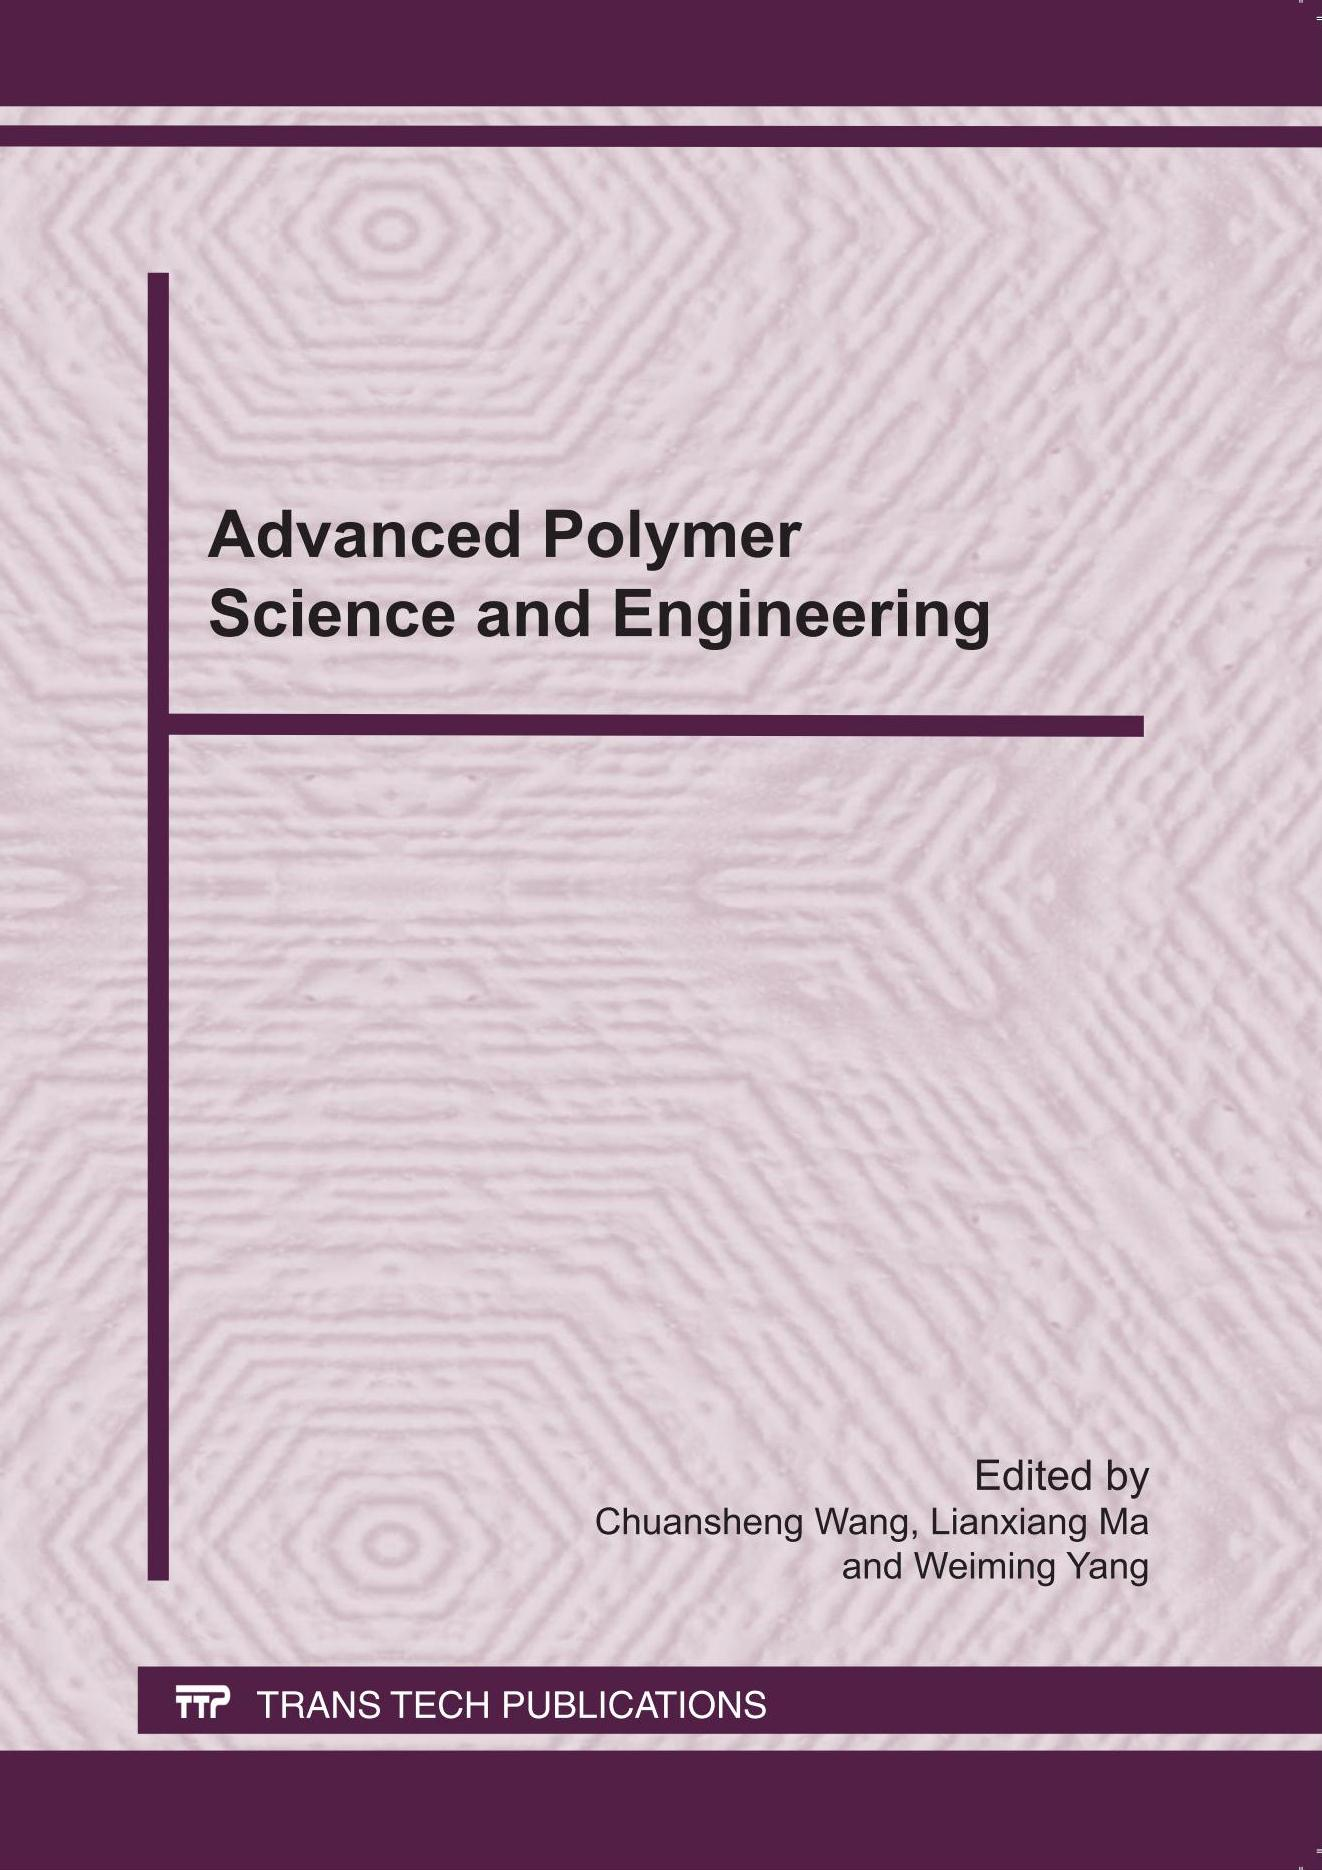 Advanced Polymer Science and Engineering